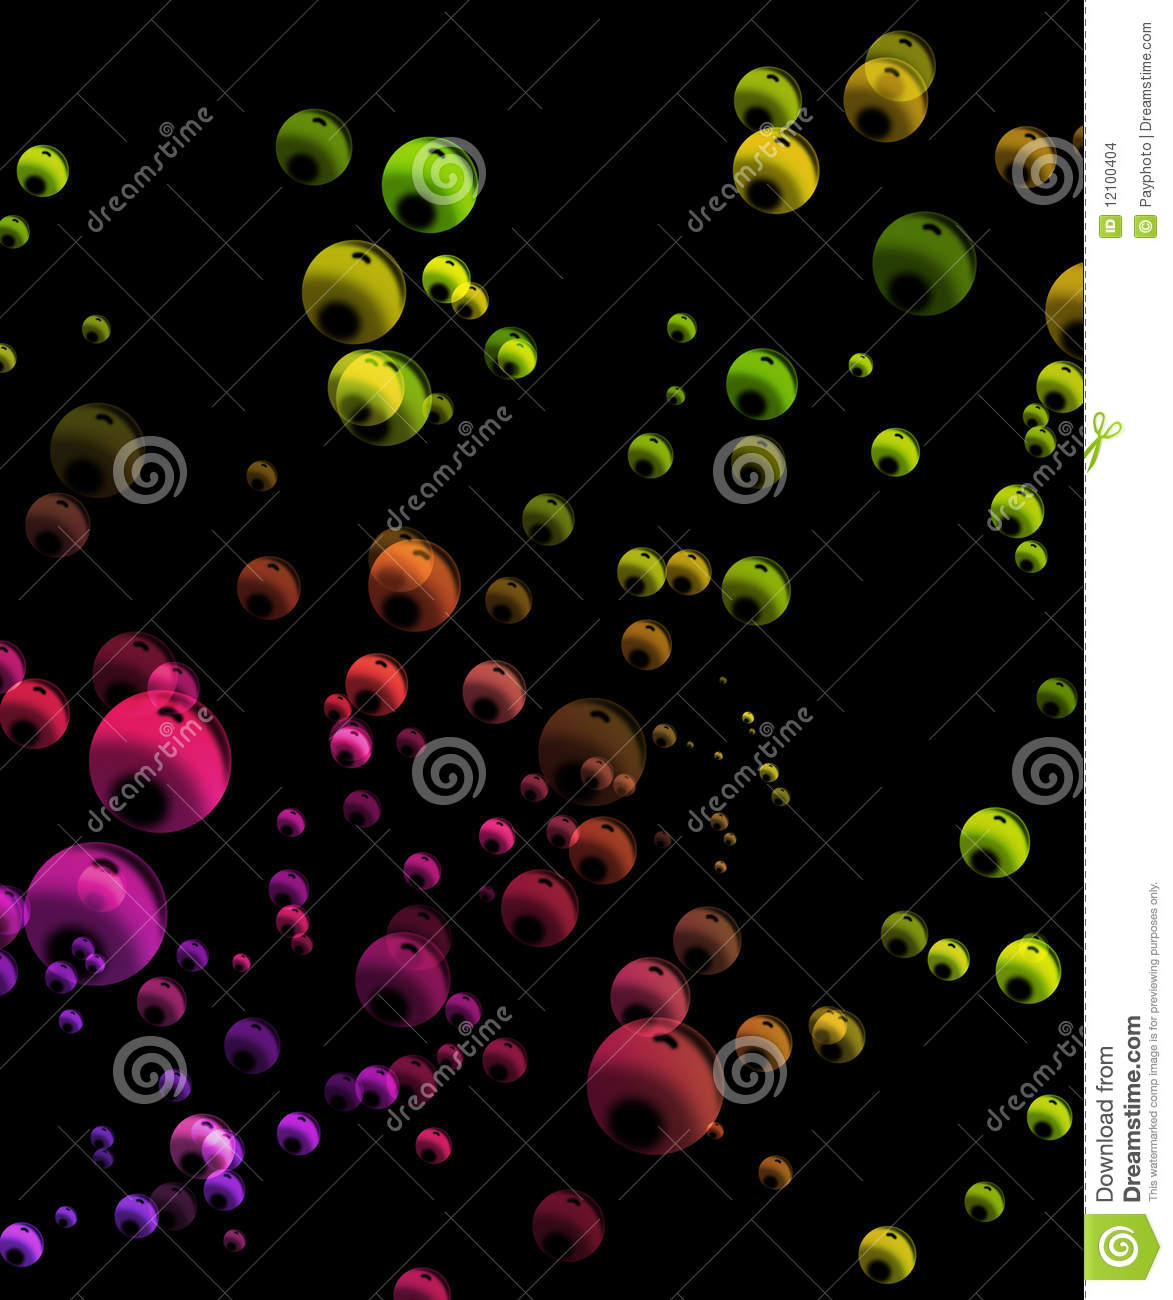 Colorful Bubbles Background Stock Images - Image: 12100404